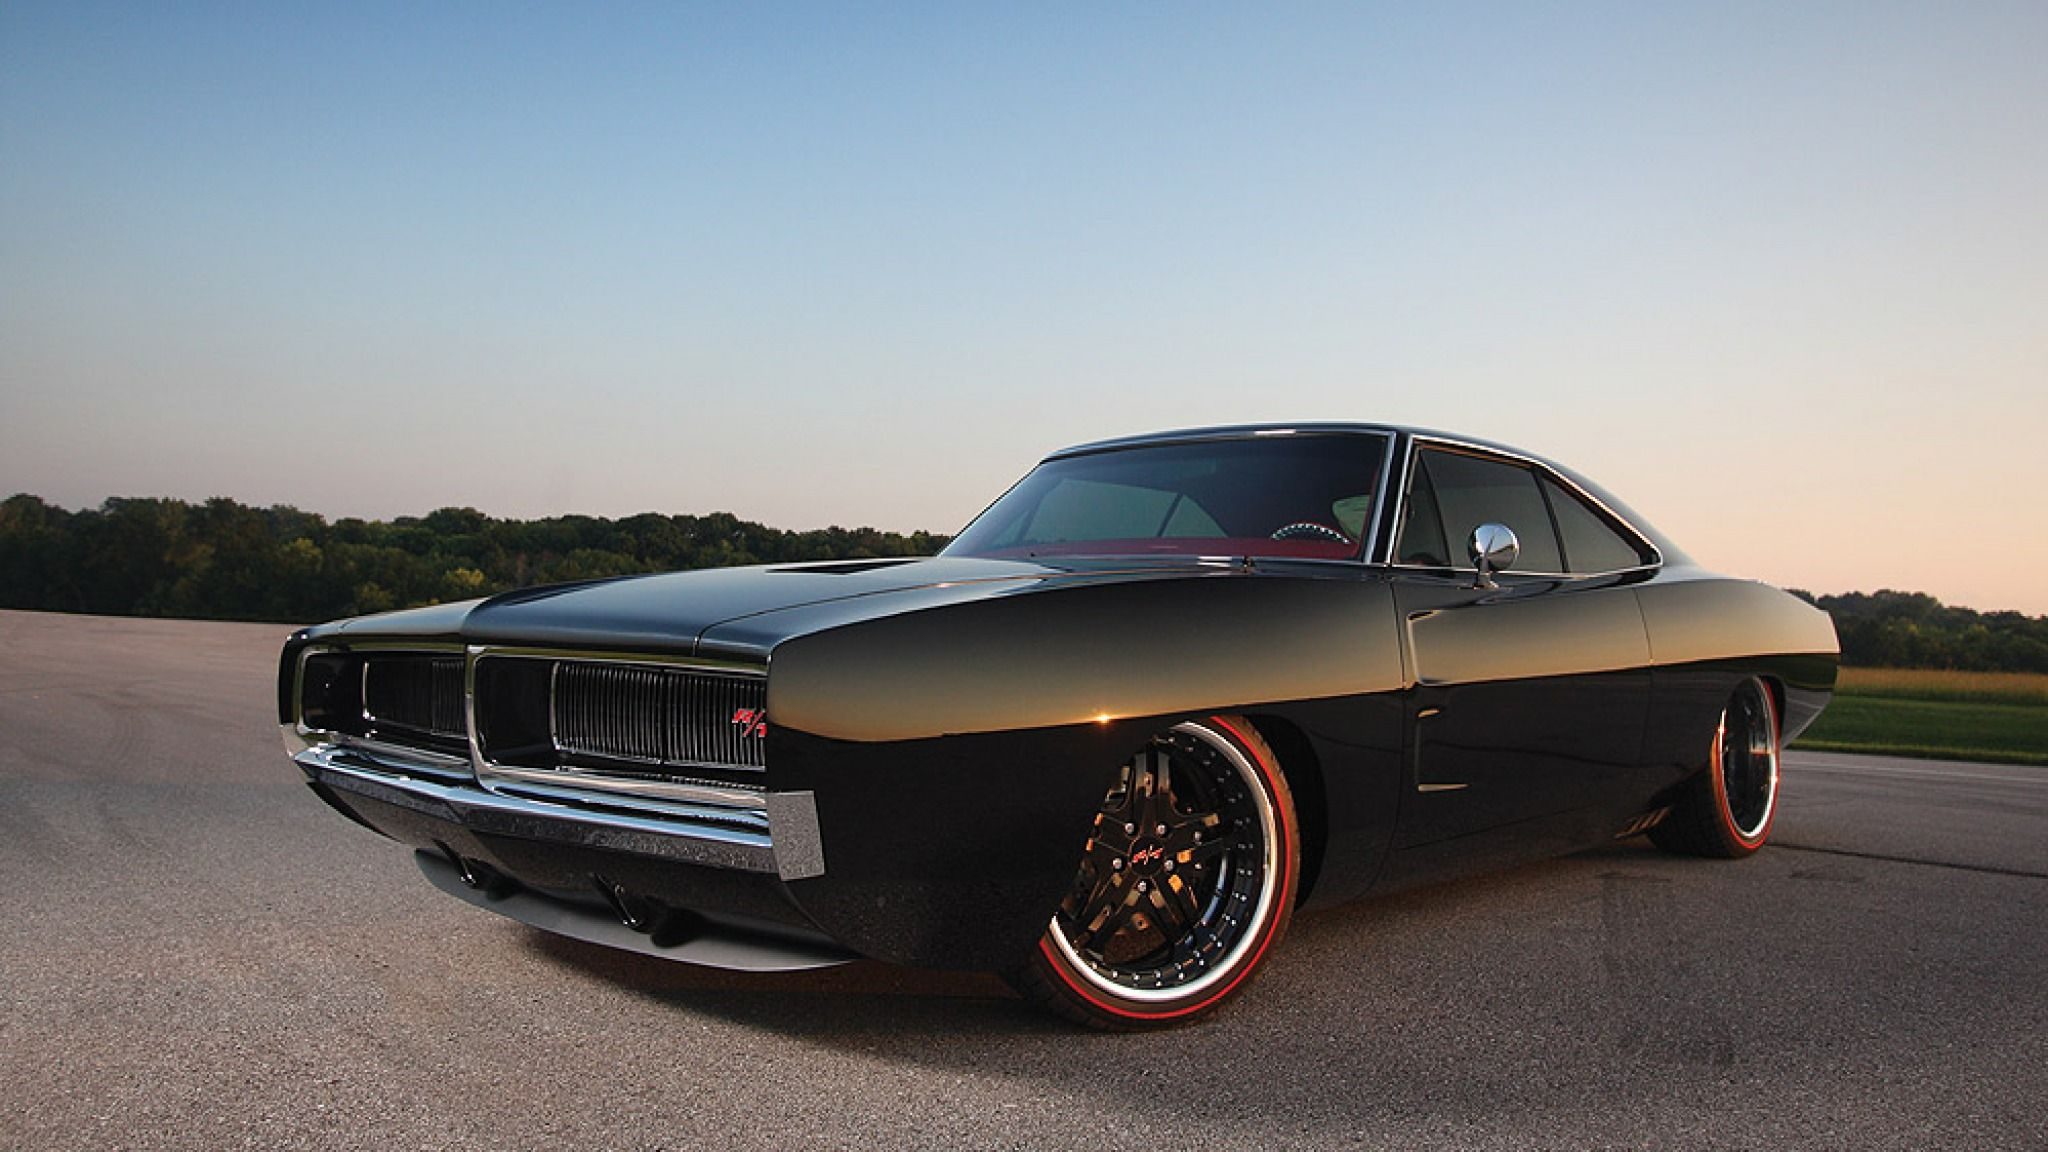 1970 Dodge Charger Wallpaper 24